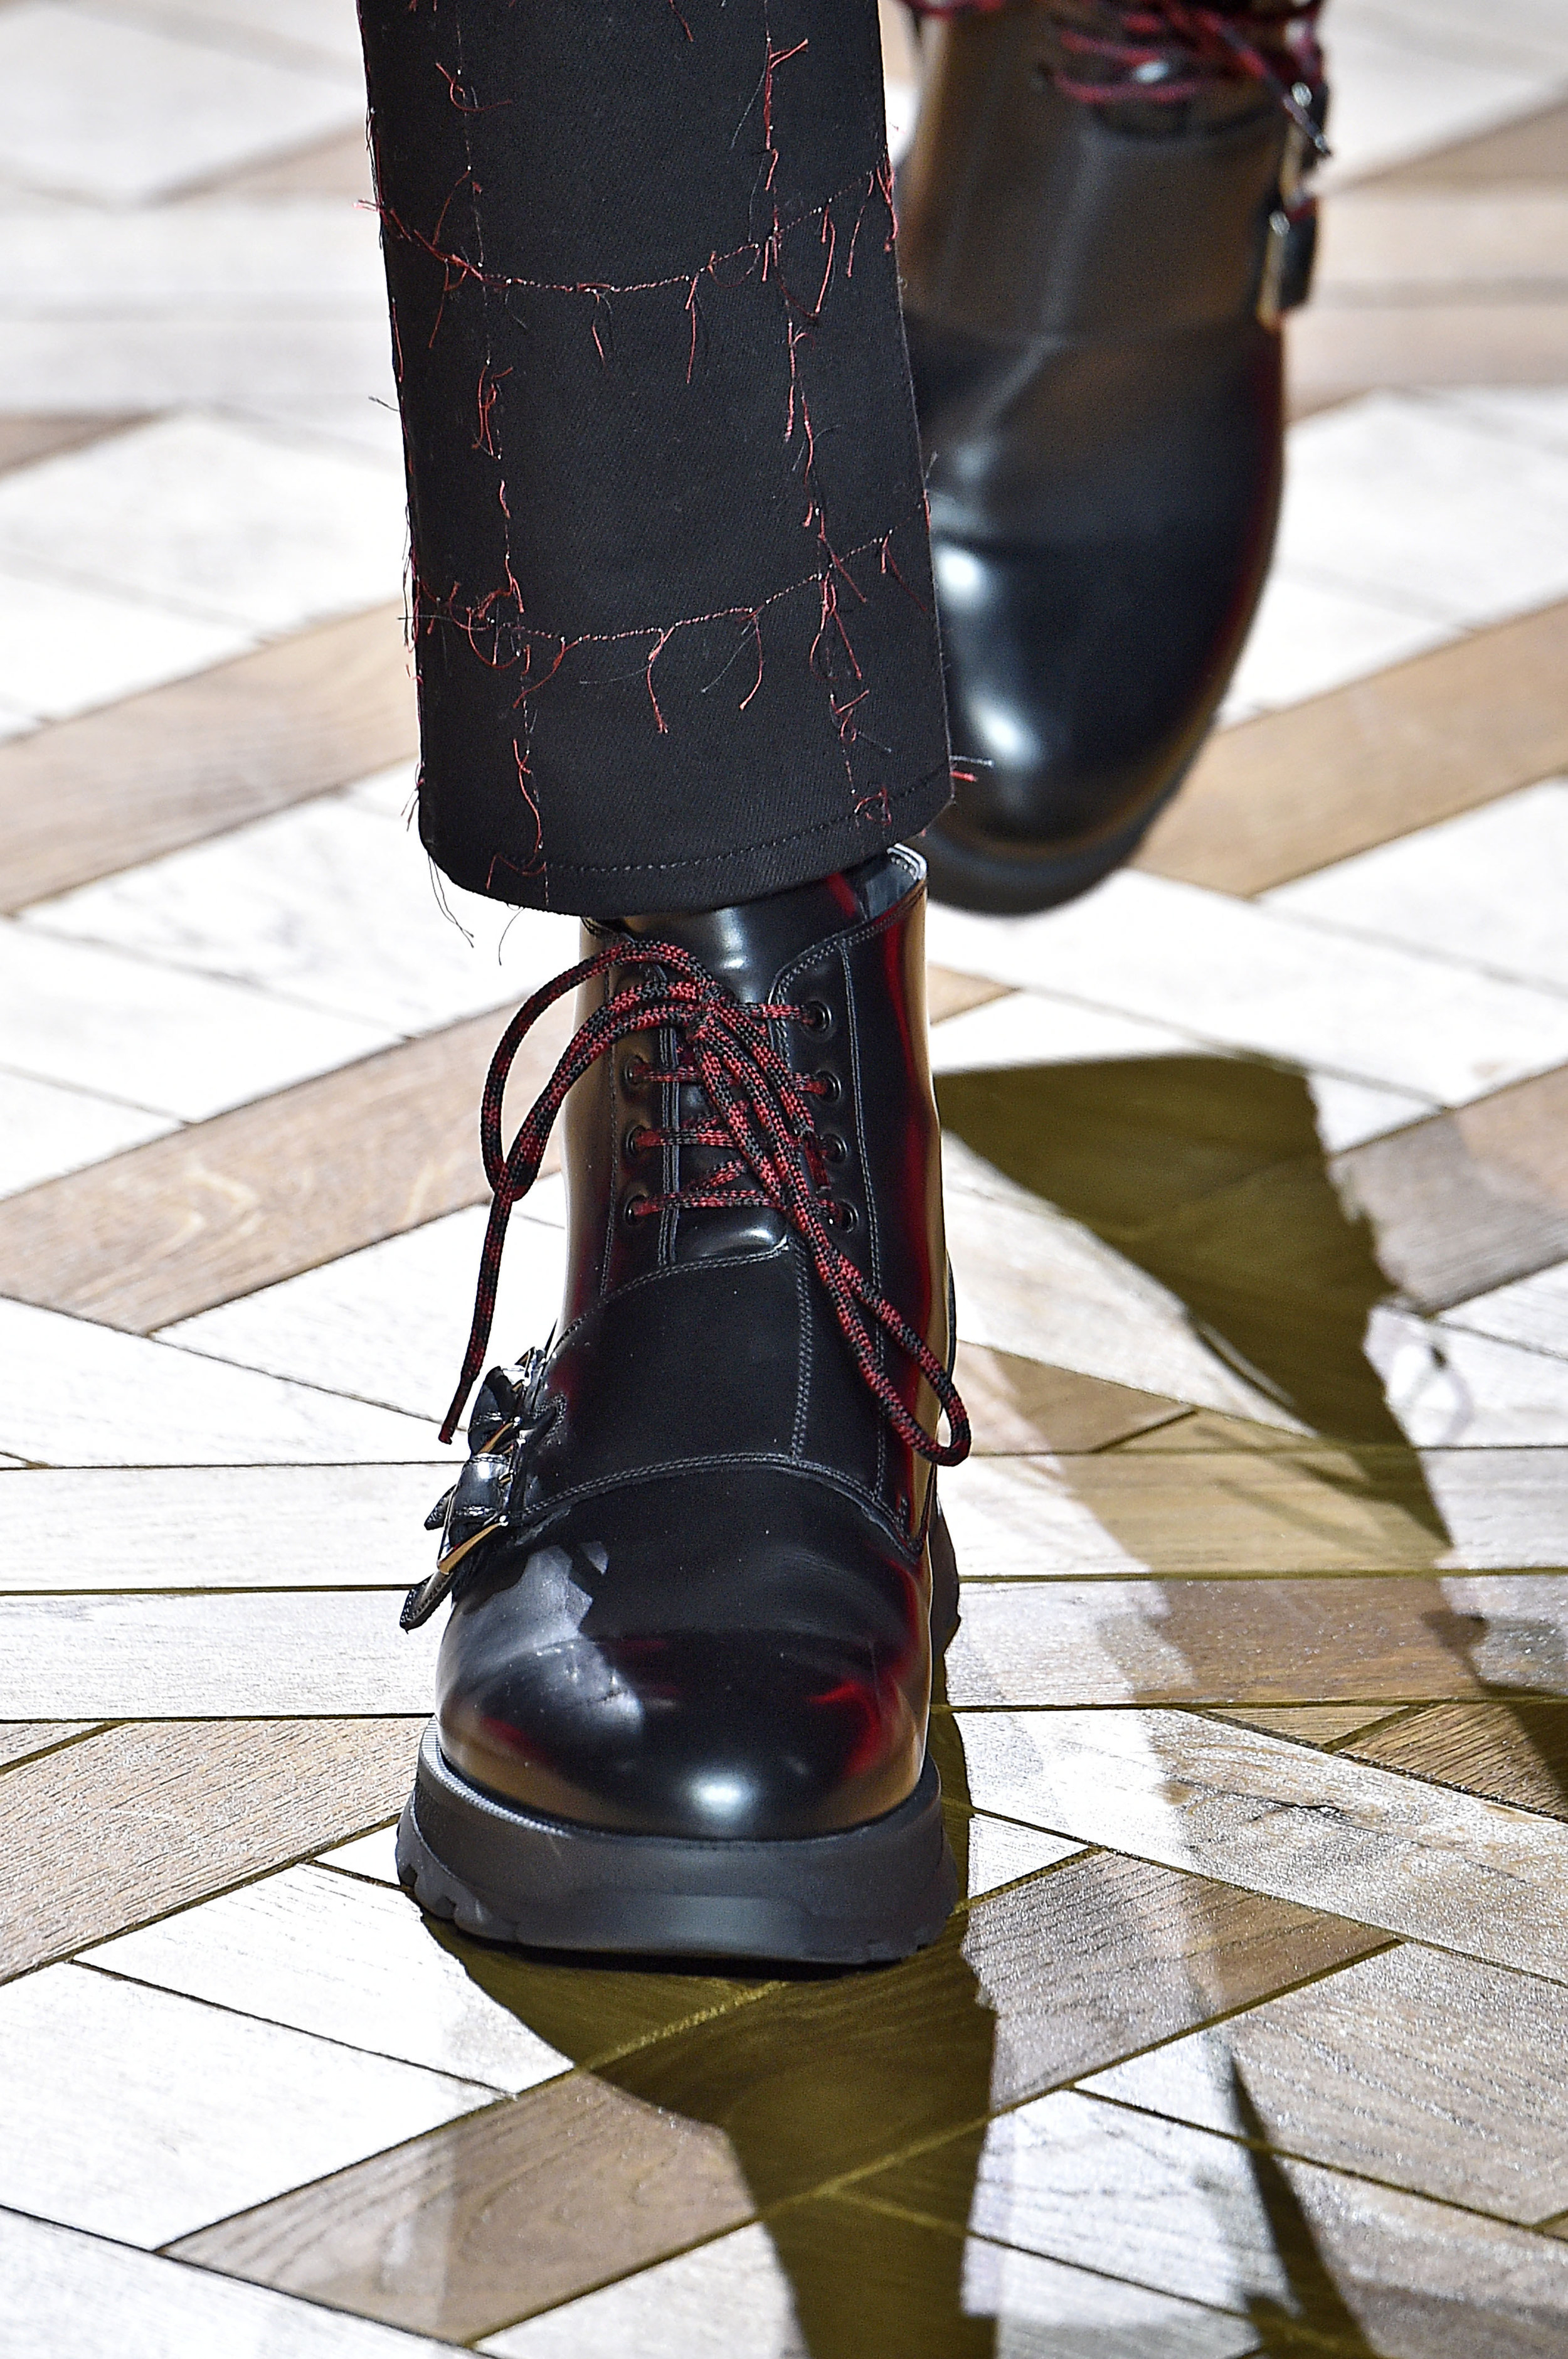 Heavy, leather military boots against the geometric, light hardwood floors bring textures and styles together to a whole new level.  Photo: Architectural Digest